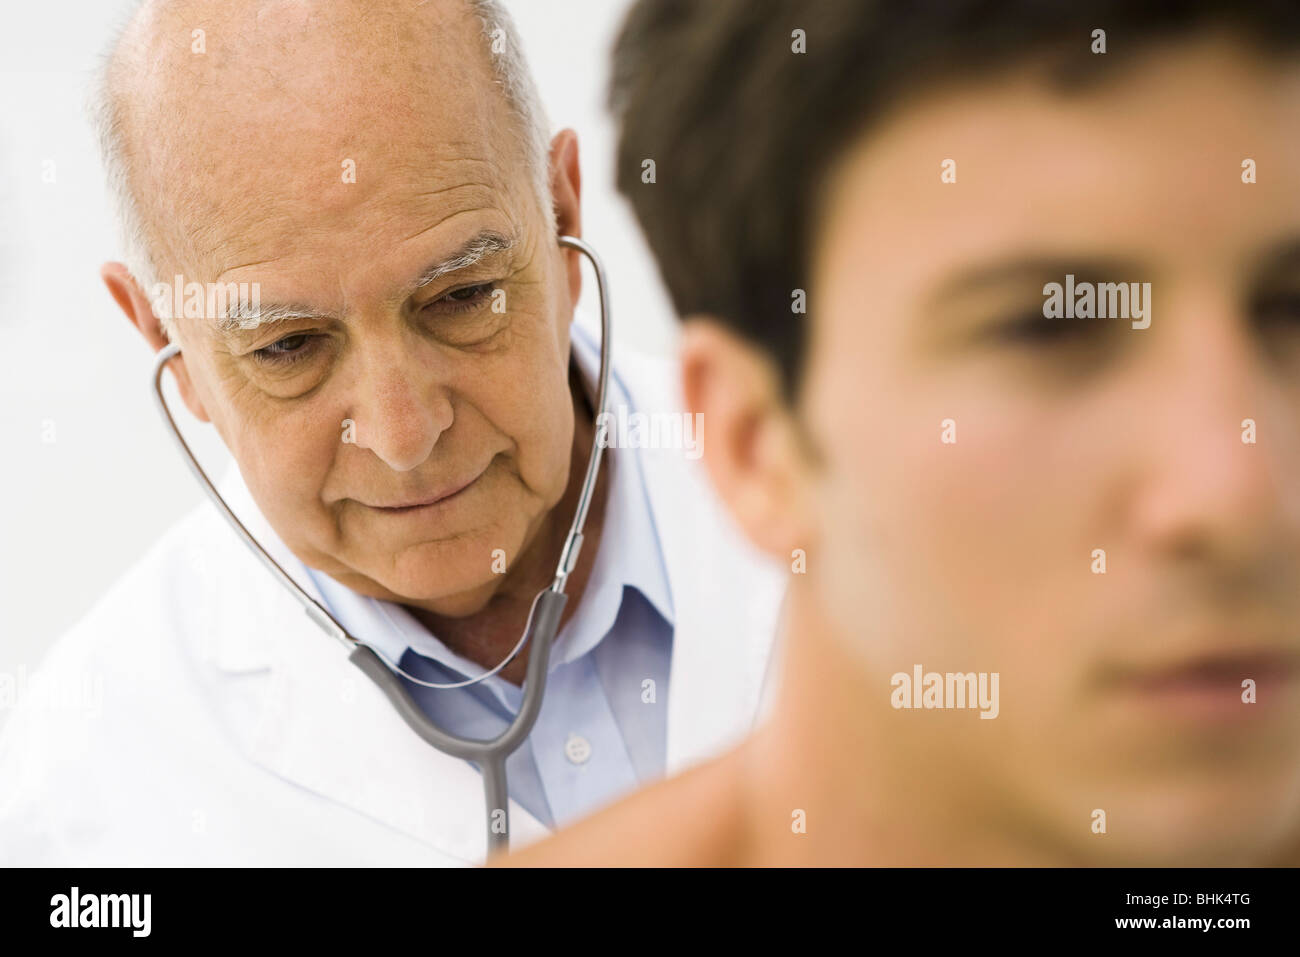 Doctor conducting medical exam - Stock Image